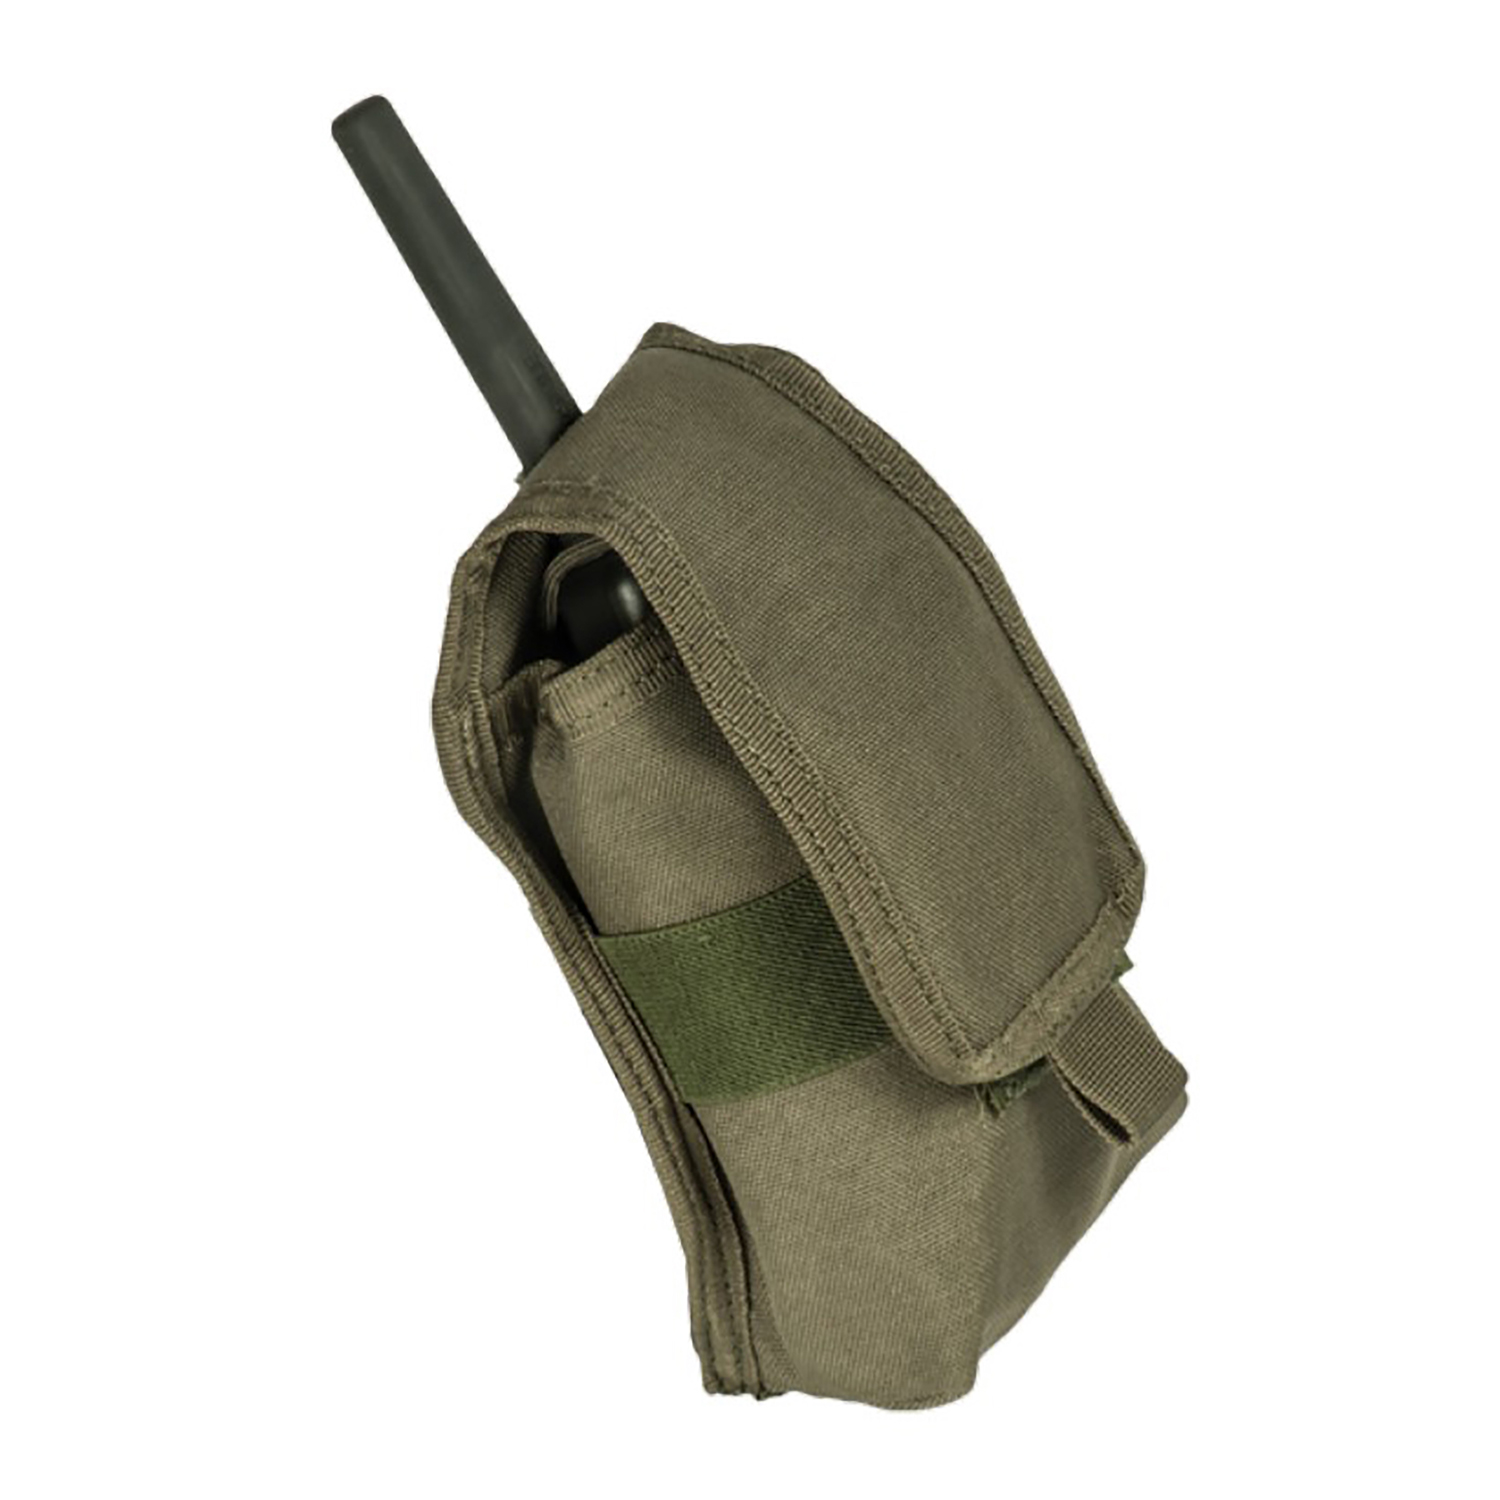 Armor Express RadioAdjustable Covered Pouch